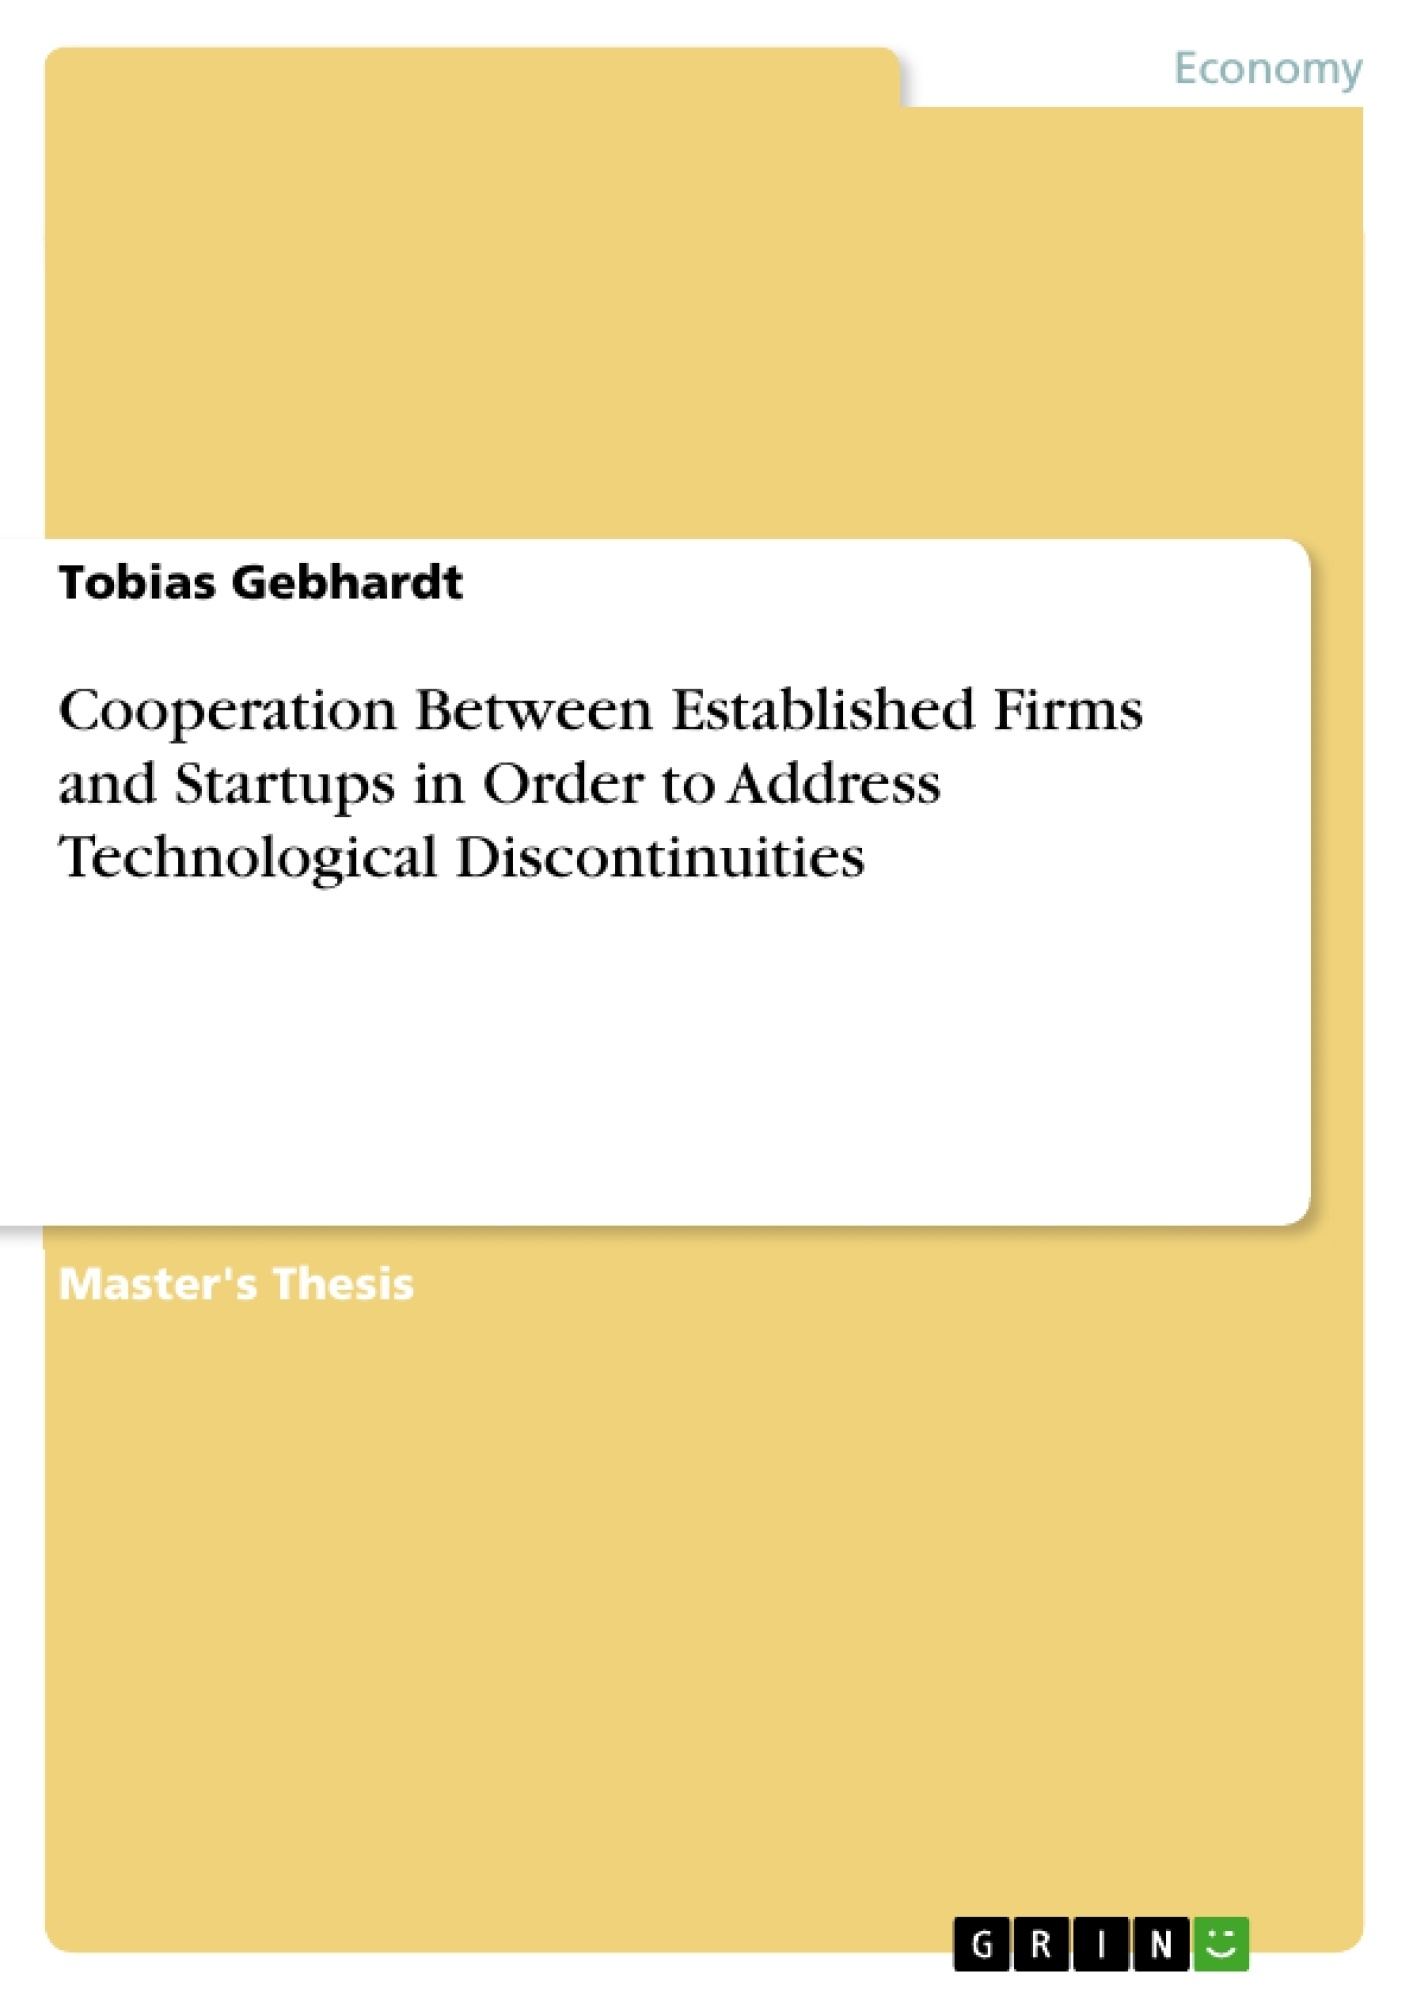 Title: Cooperation Between Established Firms and Startups in Order to Address Technological Discontinuities